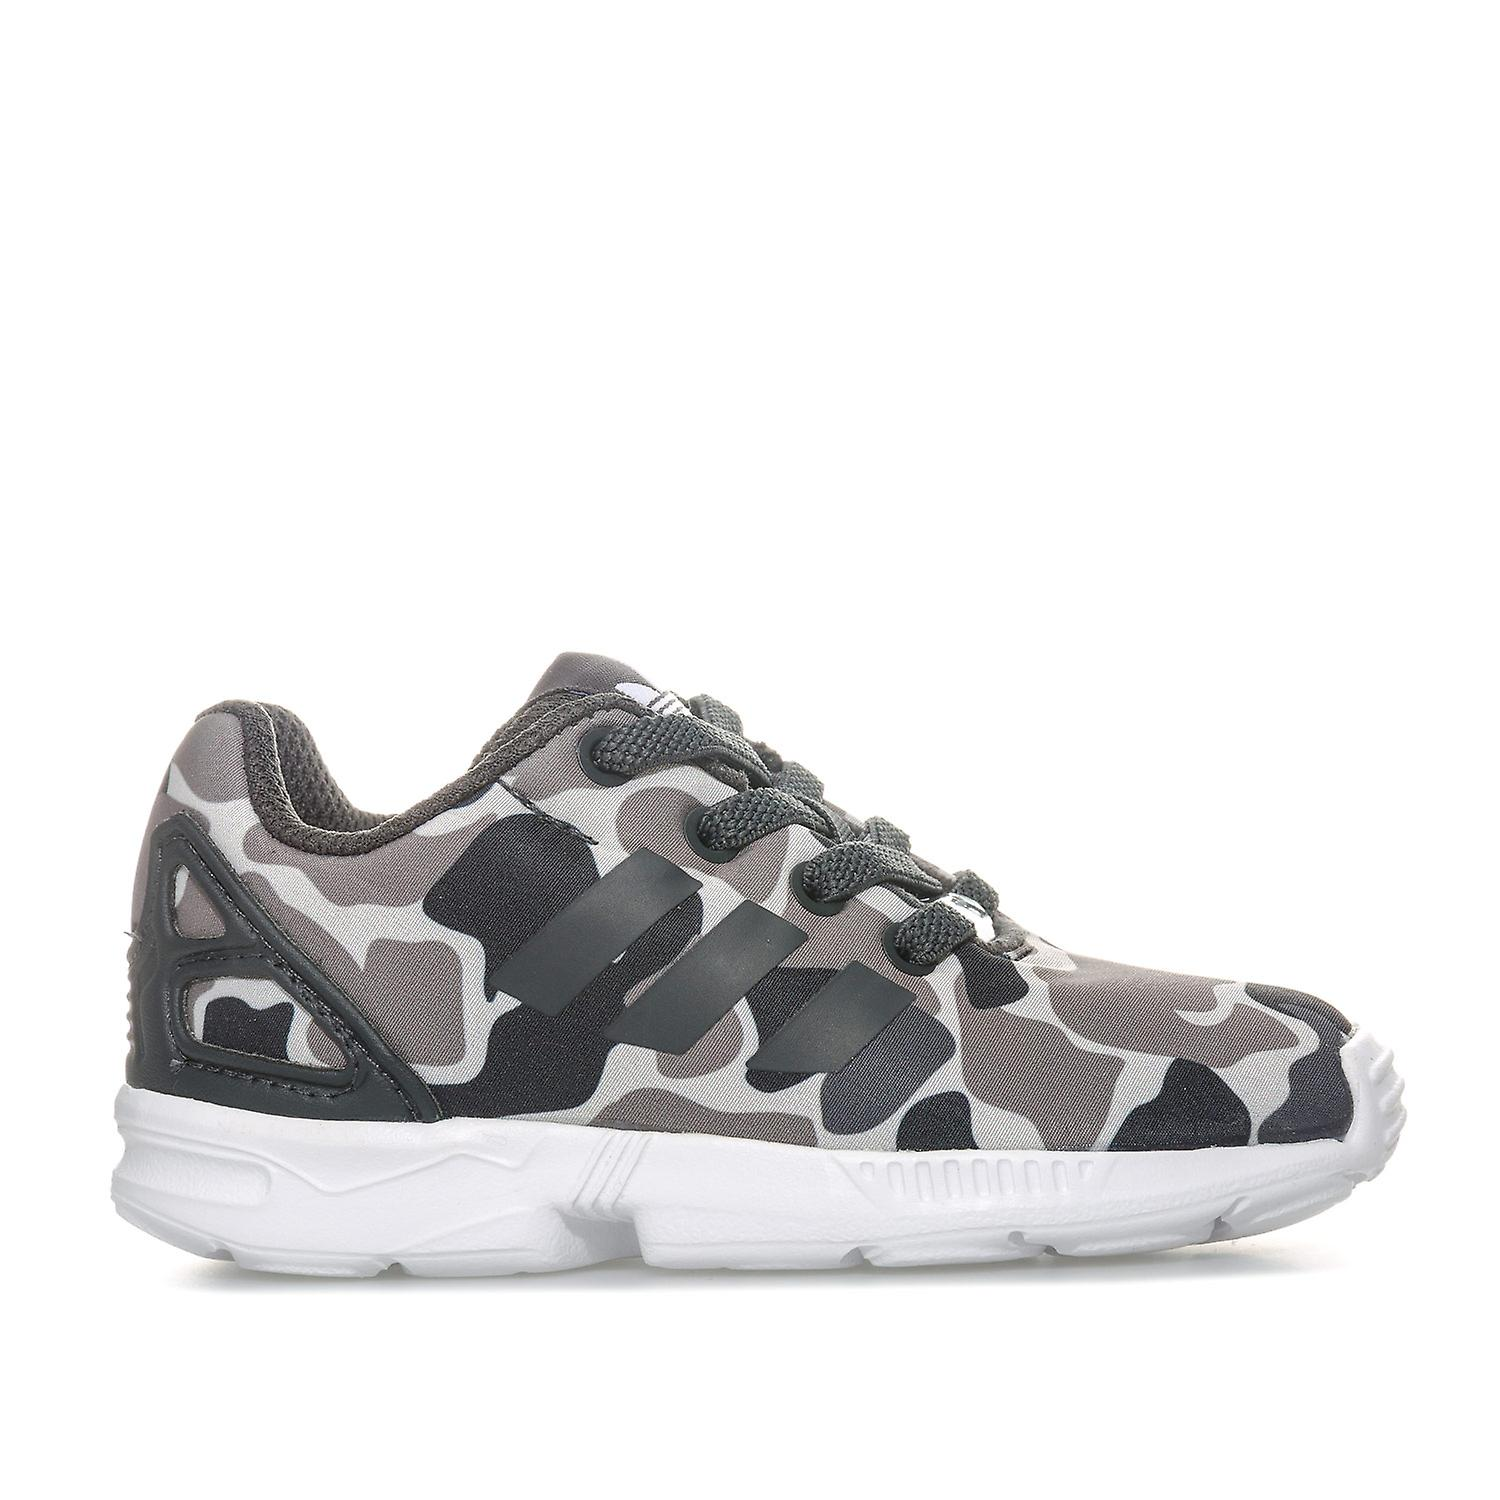 sports shoes a93e1 54838 Infant Boys adidas Originals Zx Flux Camo Trainers In Black Grey-  Elasticated